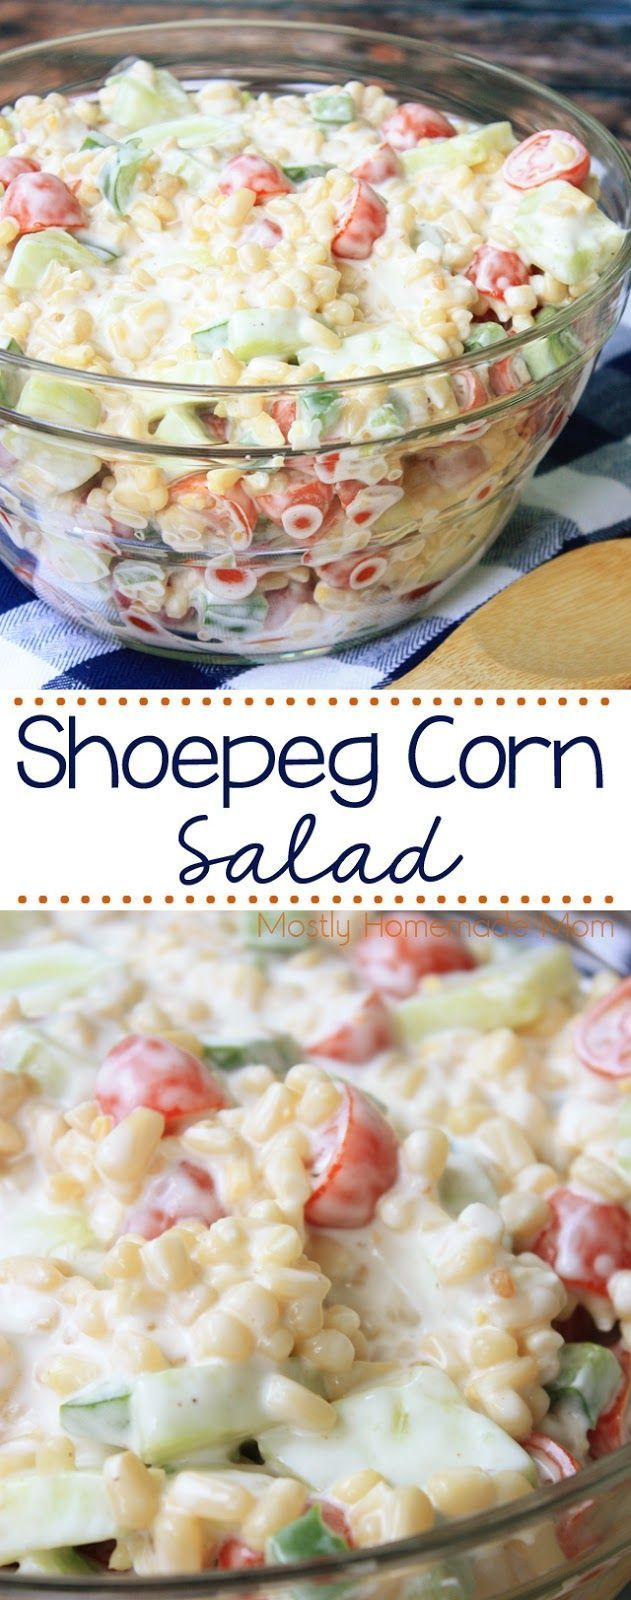 Salad Shoepeg Corn Salad - shoepeg corn, cherry tomatoes, cucumbers, and green peppers tossed in a tangy dressing. This salad recipe is perfect for spring and summer BBQs!Shoepeg Corn Salad - shoepeg corn, cherry tomatoes, cucumbers, and green peppers tossed in a tangy dressing. This salad recipe is perfect for spring and summer BBQs!Corn Salad Shoepeg Co...